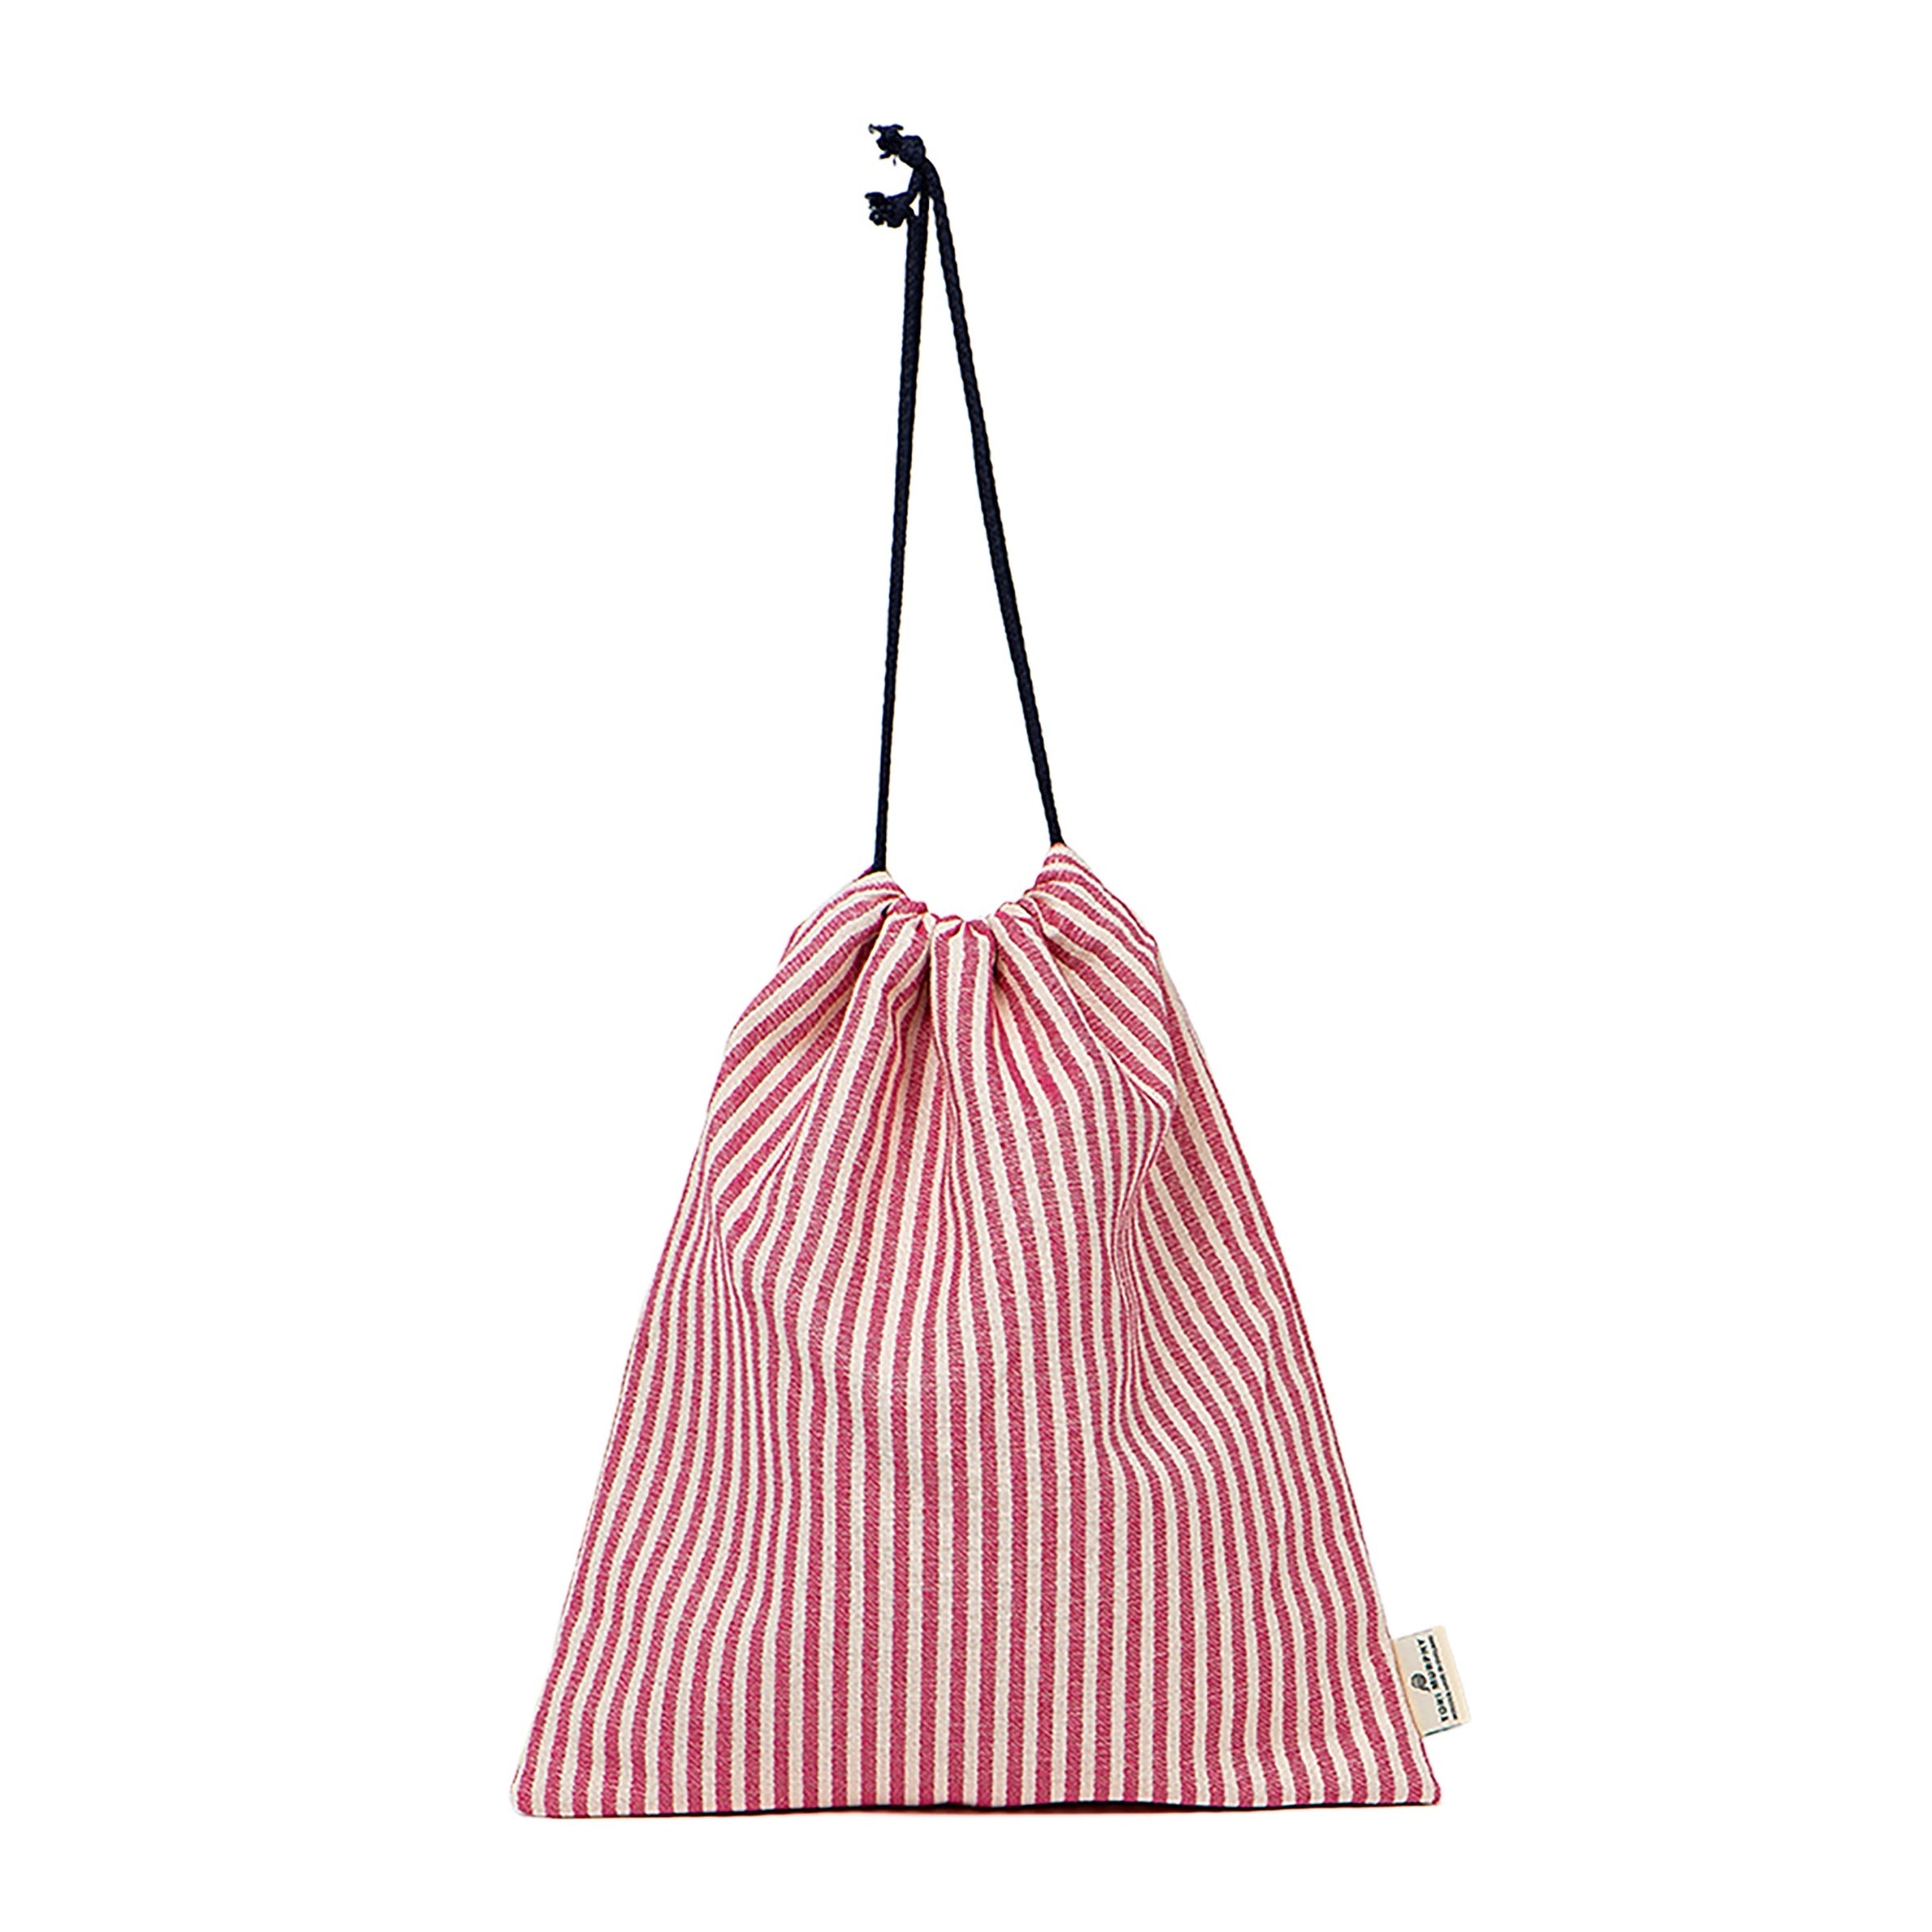 Harbour Stripe Gym Bag in Radish